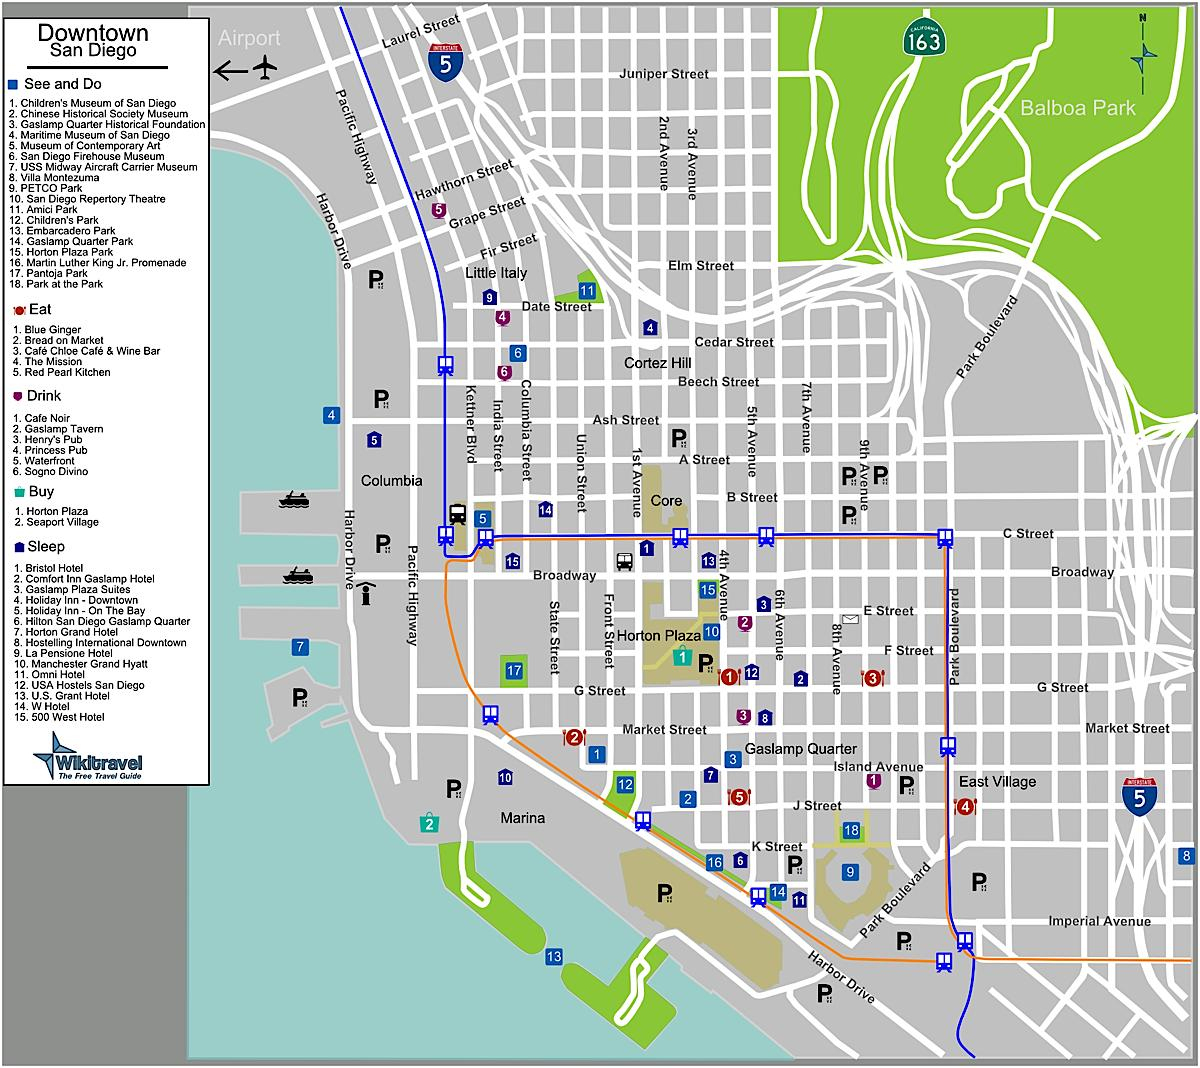 Downtown San Diego Street Map - Street Map Of Downtown San Diego - Printable Map Of Downtown San Diego